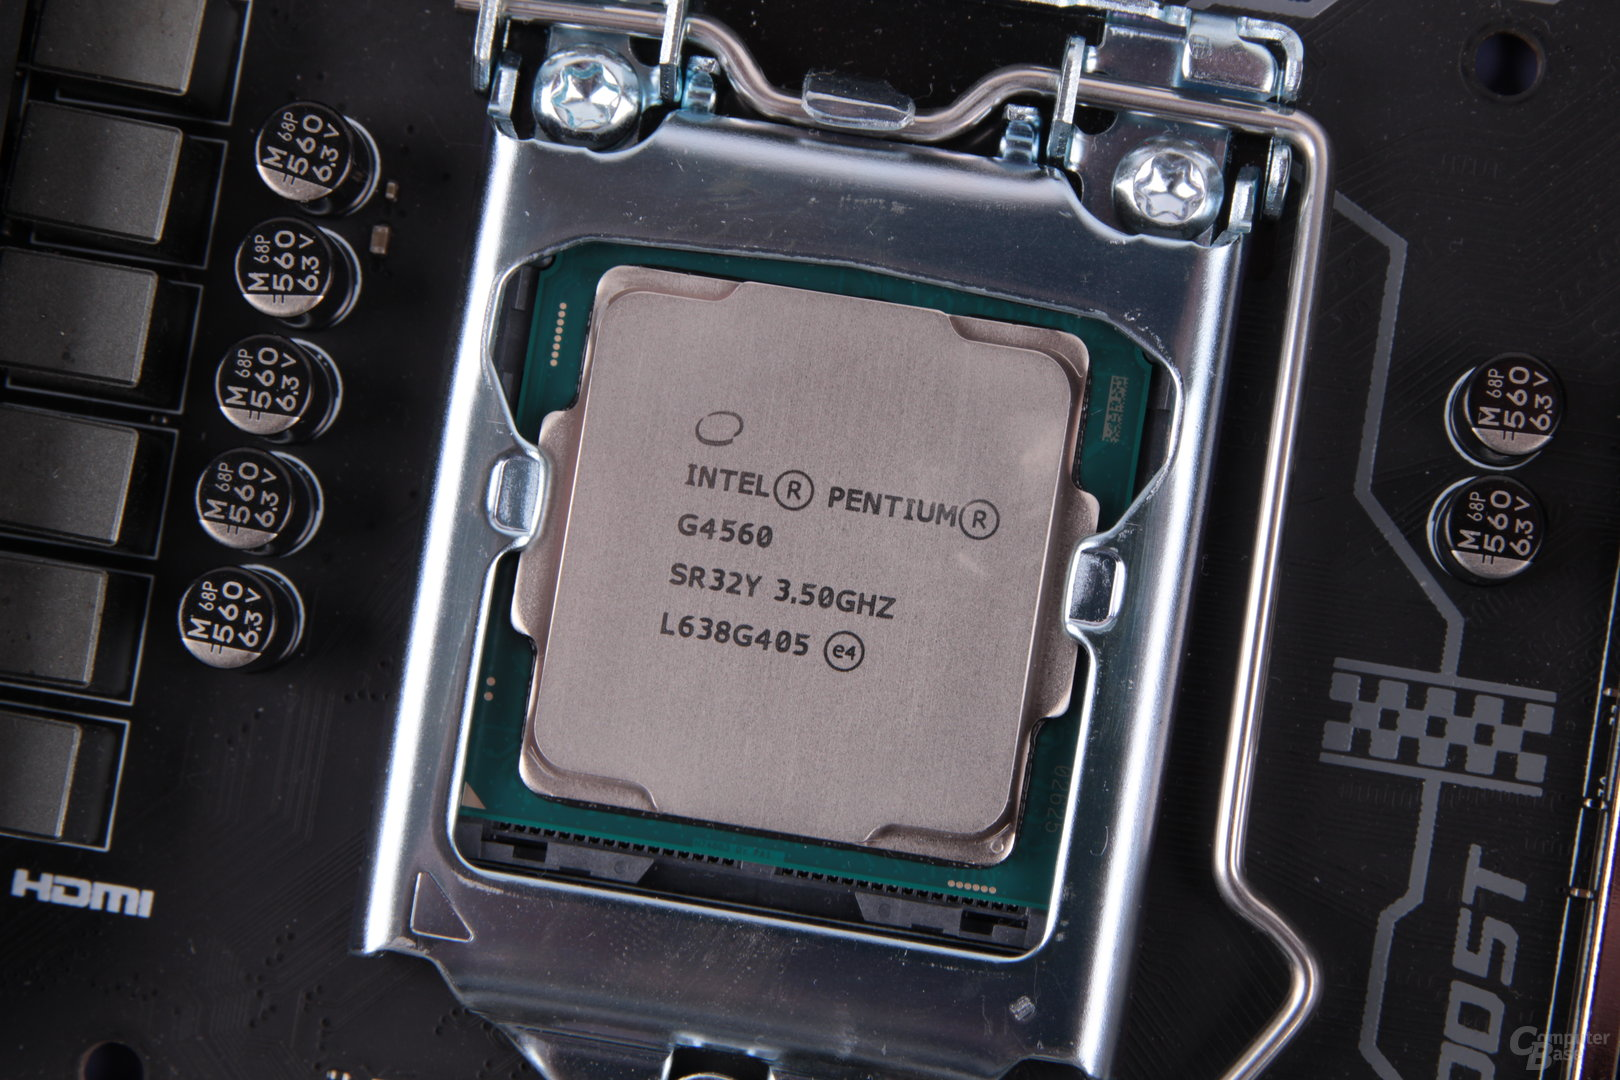 Intel Pentium G4560 Is The Ultimate Budget Cpu At Just 65 Us Processor Core I5 6600k 35 Box Socket 1151 Intels Has Been Tested By Computerbase Revealing That It Could Be Best Sub 100